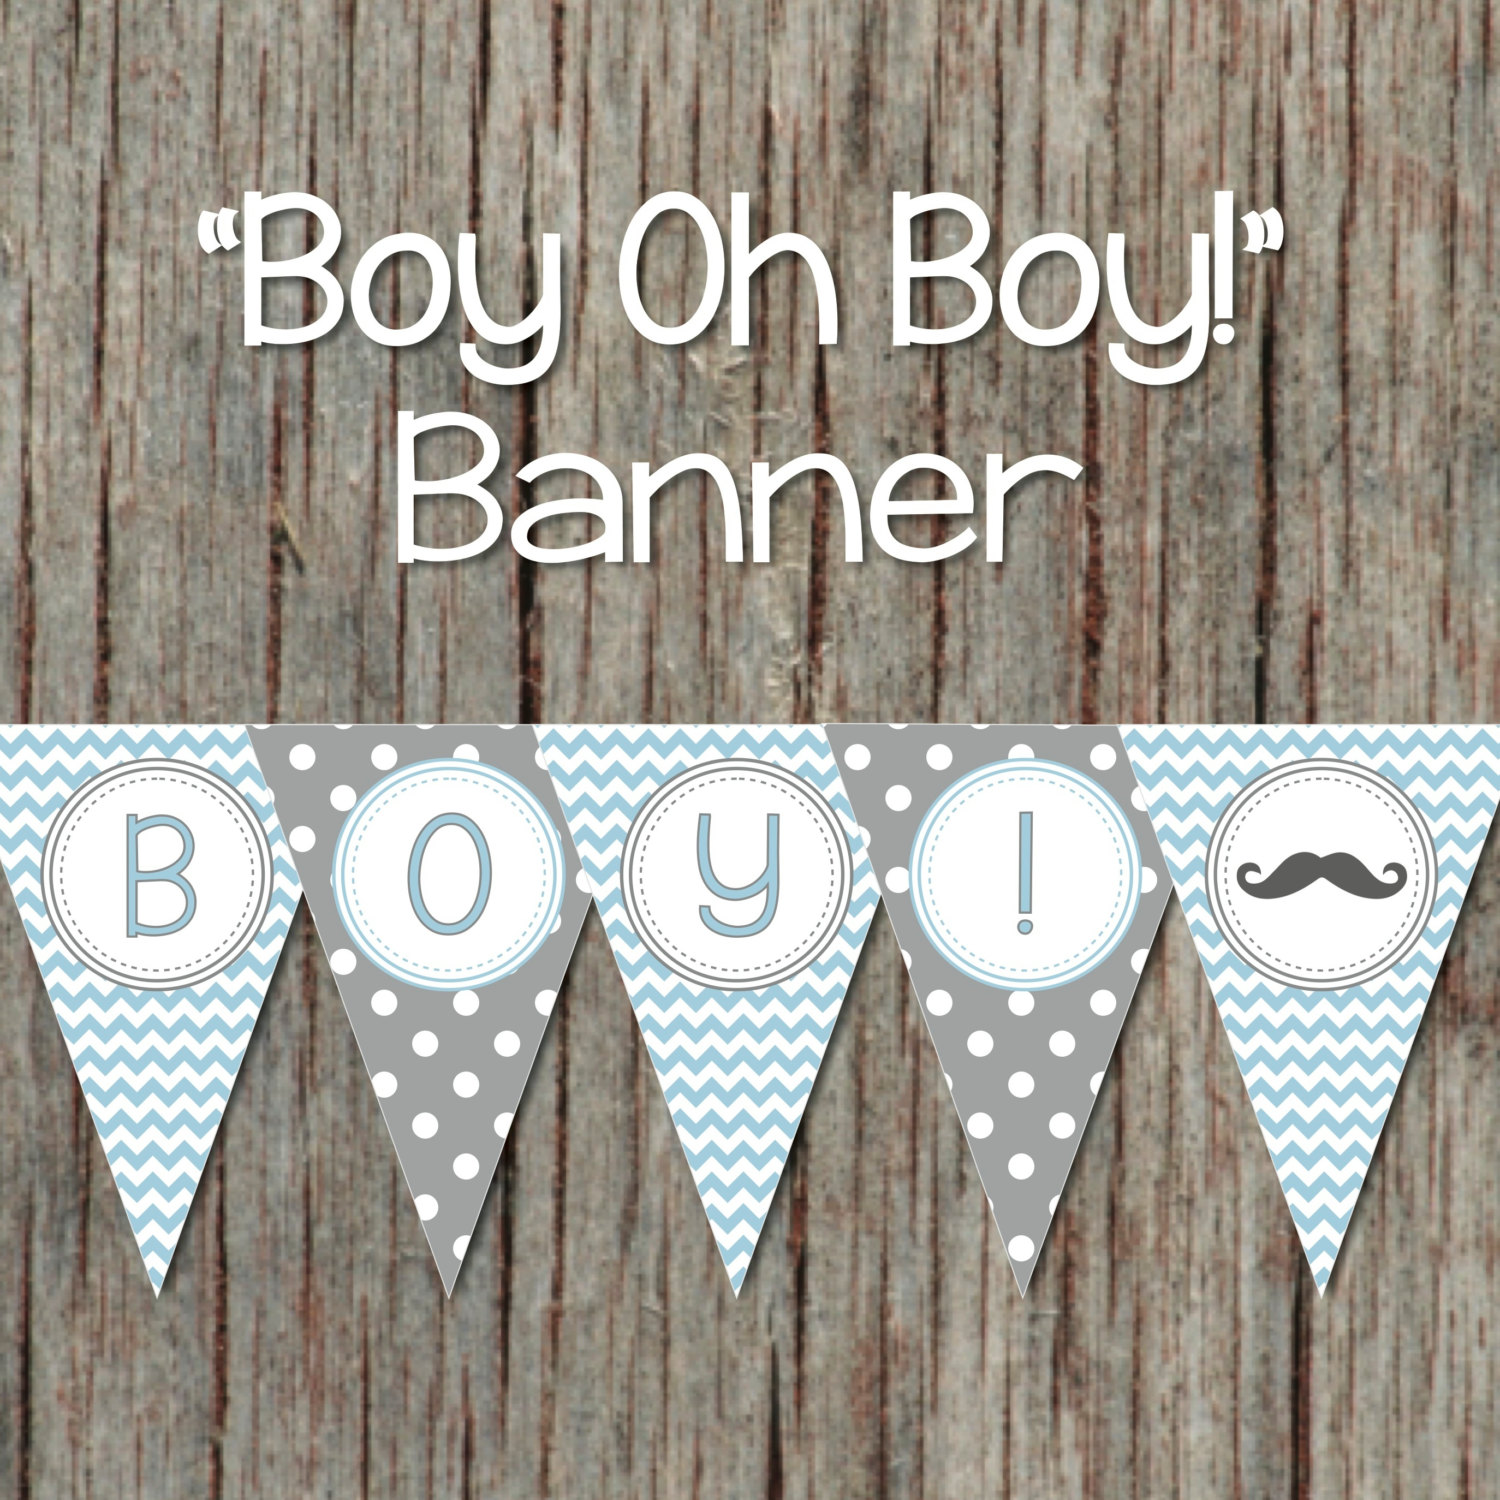 Full Size of Baby Shower:89+ Indulging Baby Shower Banner Picture Inspirations Baby Shower Banner Or Unique Baby Shower With Baby Shower Hairstyles Plus Juegos Para Baby Shower Together With Baby Shower Decorations As Well As Baby Shower Giveaways And Baby Shower Desserts